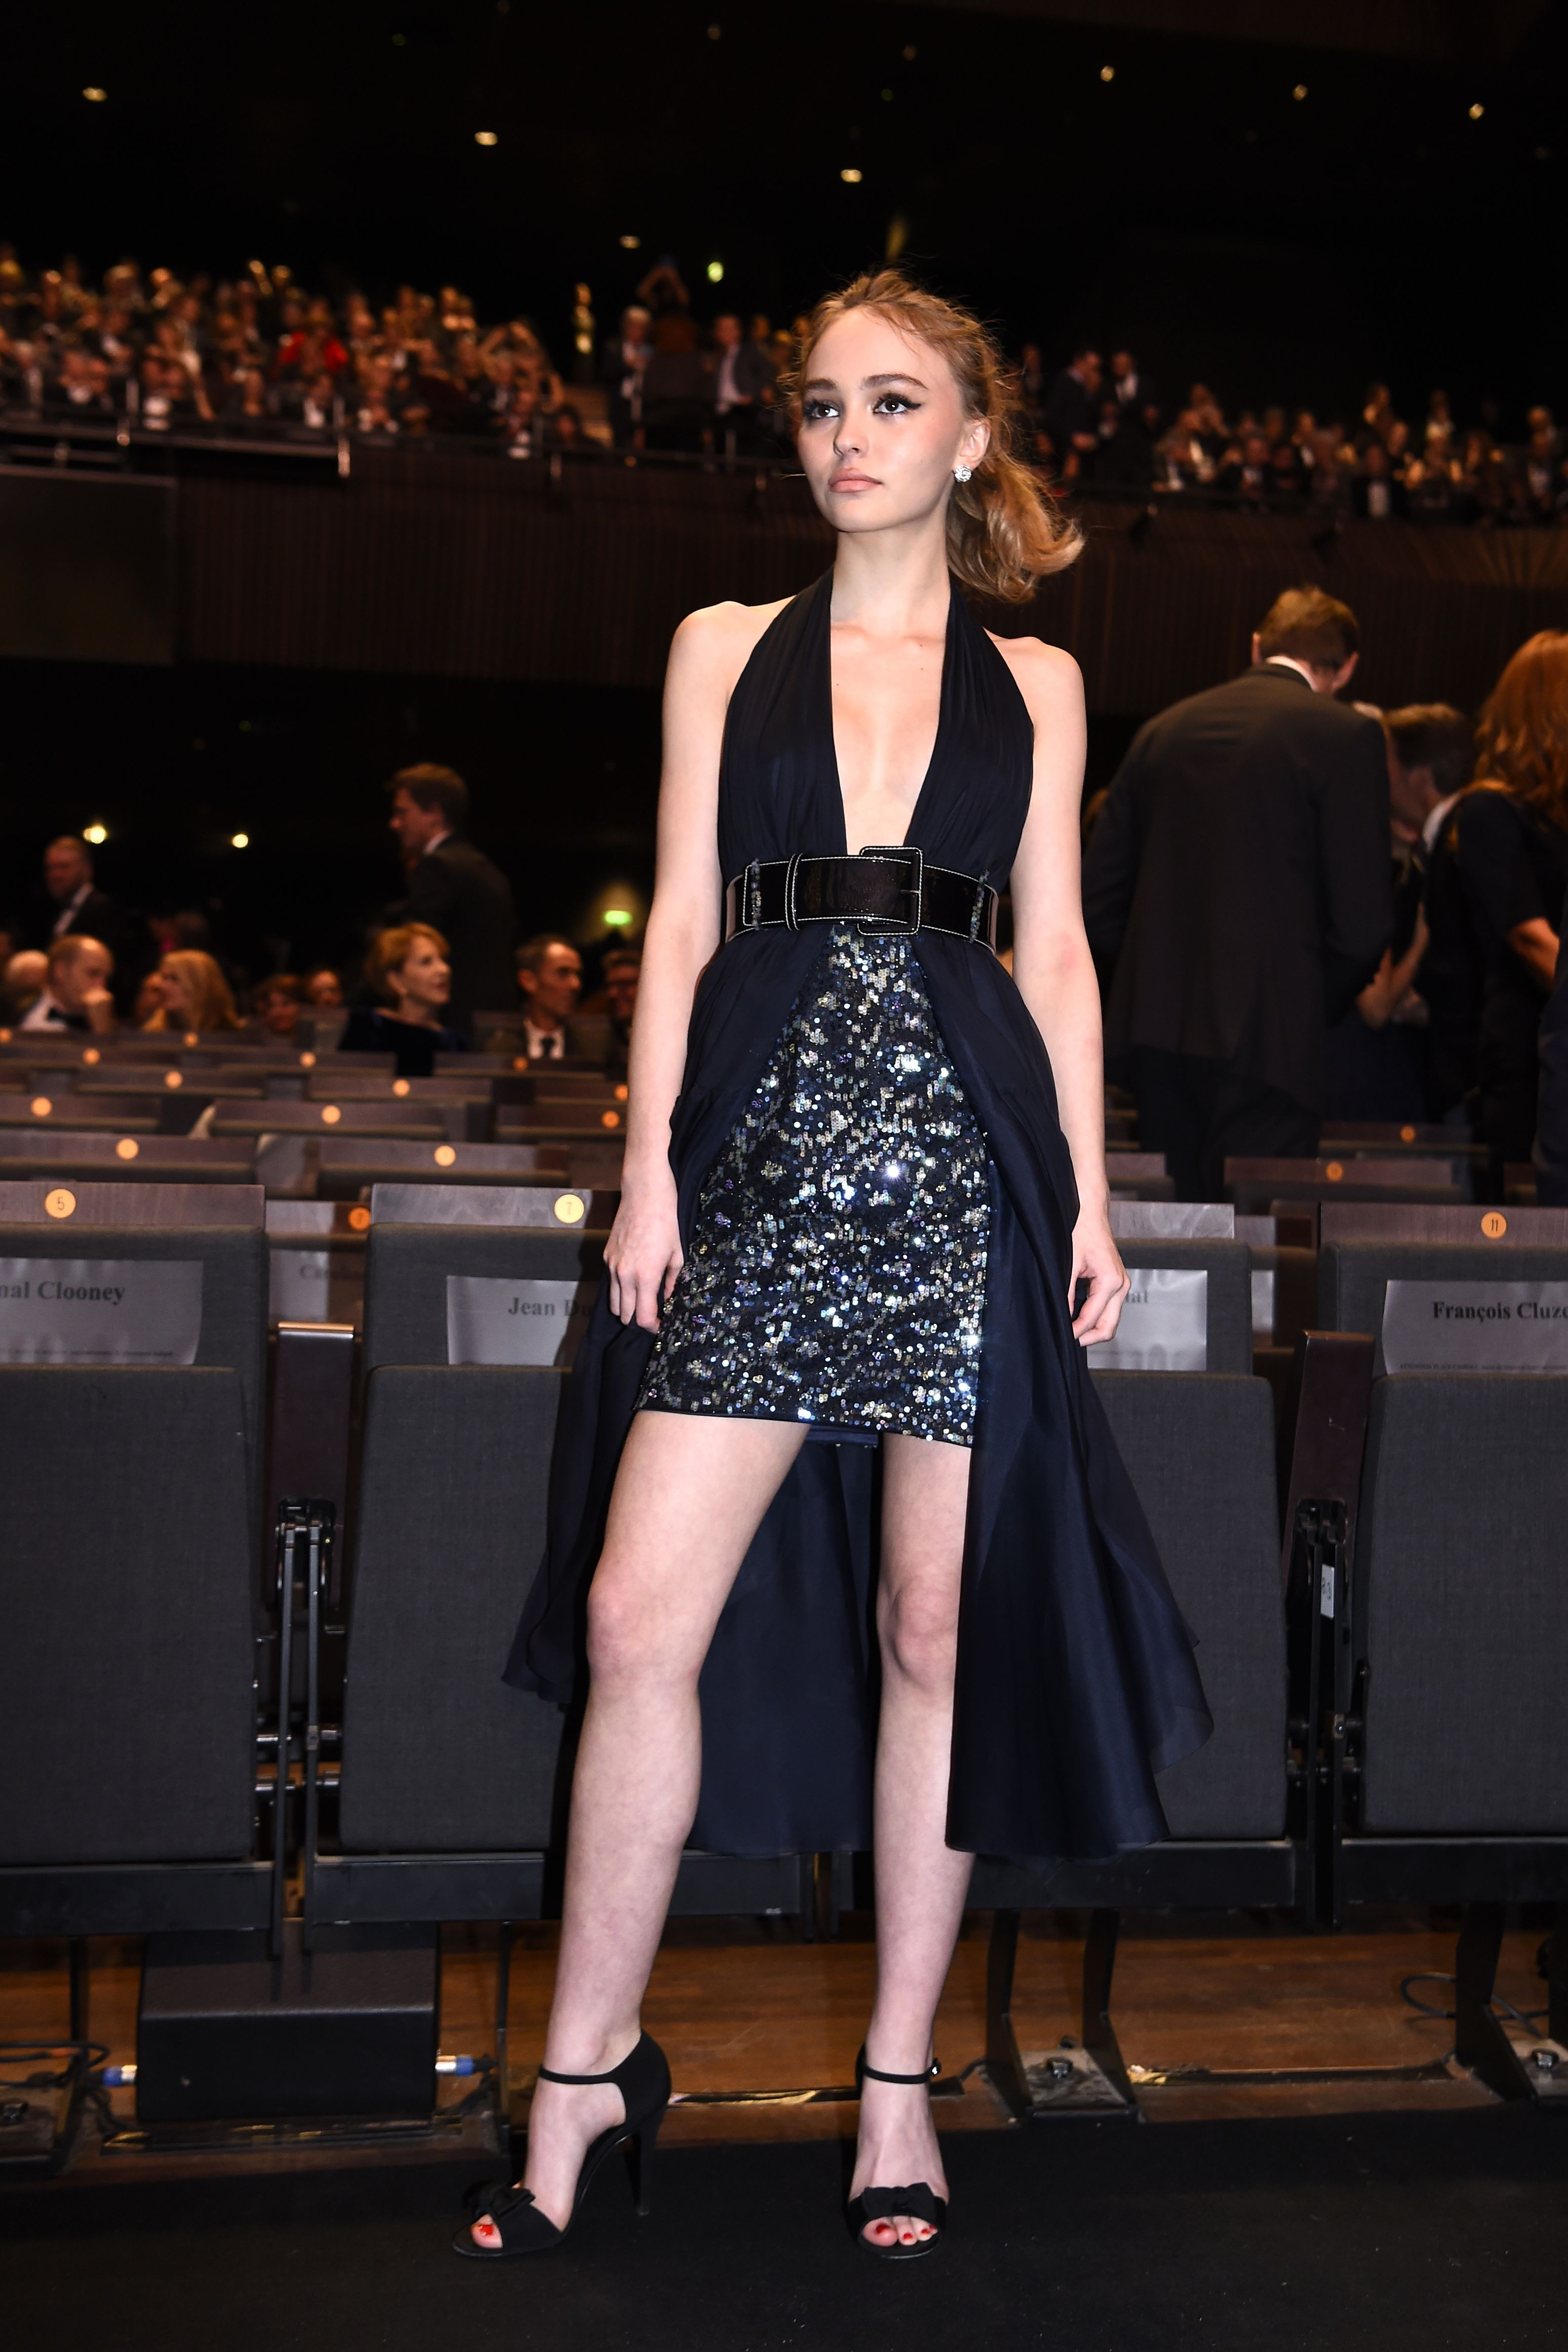 lily-rose_depp_poses_as